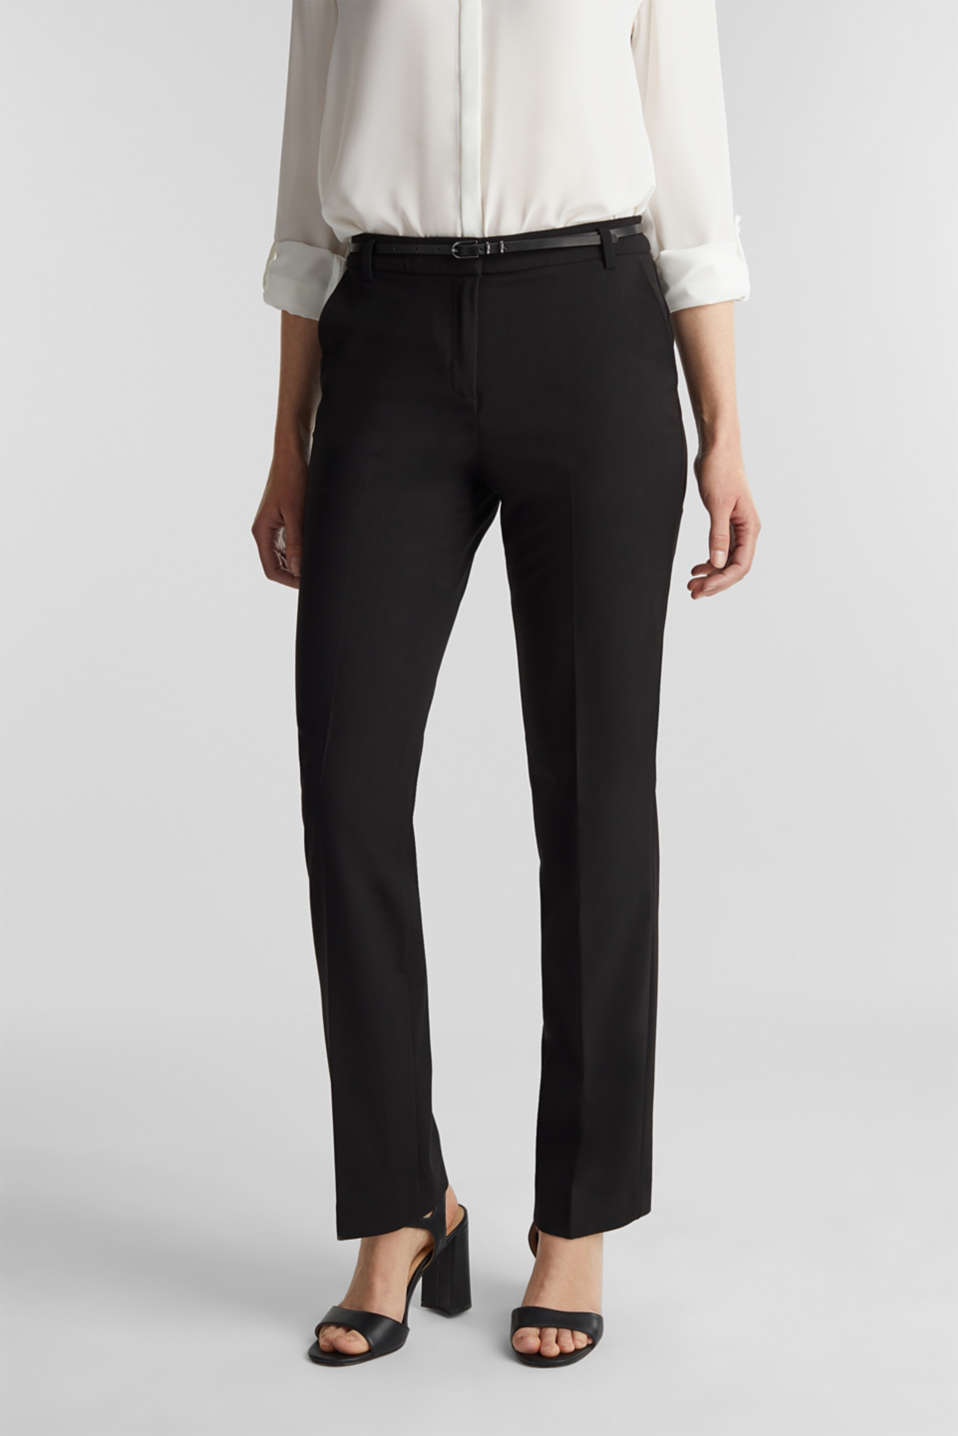 PURE BUSINESS mix + match trousers, BLACK, detail image number 0